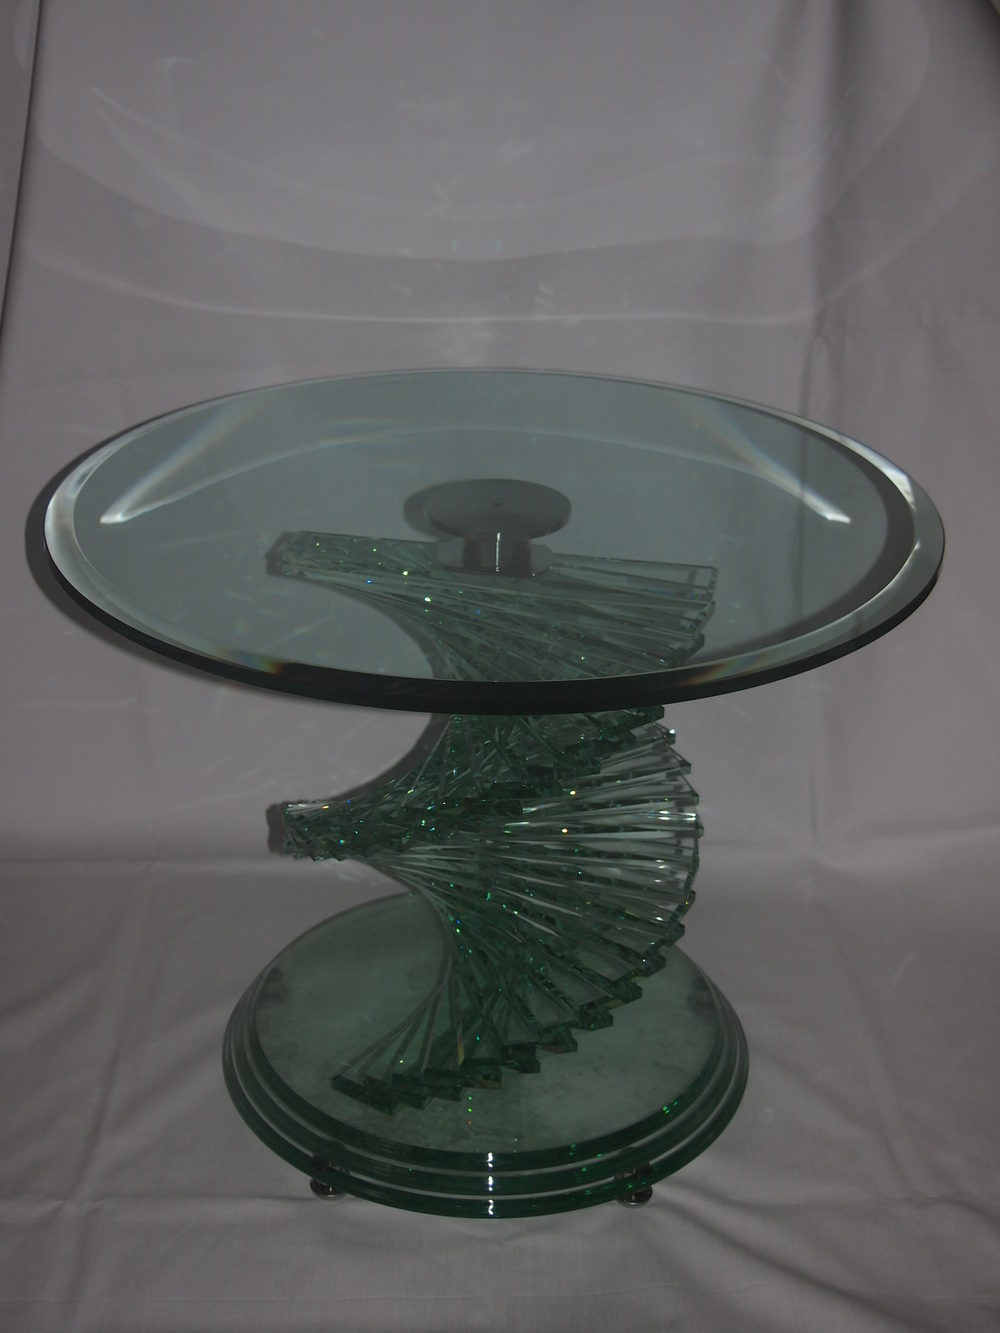 Bricks For Sale >> Antiques Atlas - Heavy Glass Spiral Coffee Table